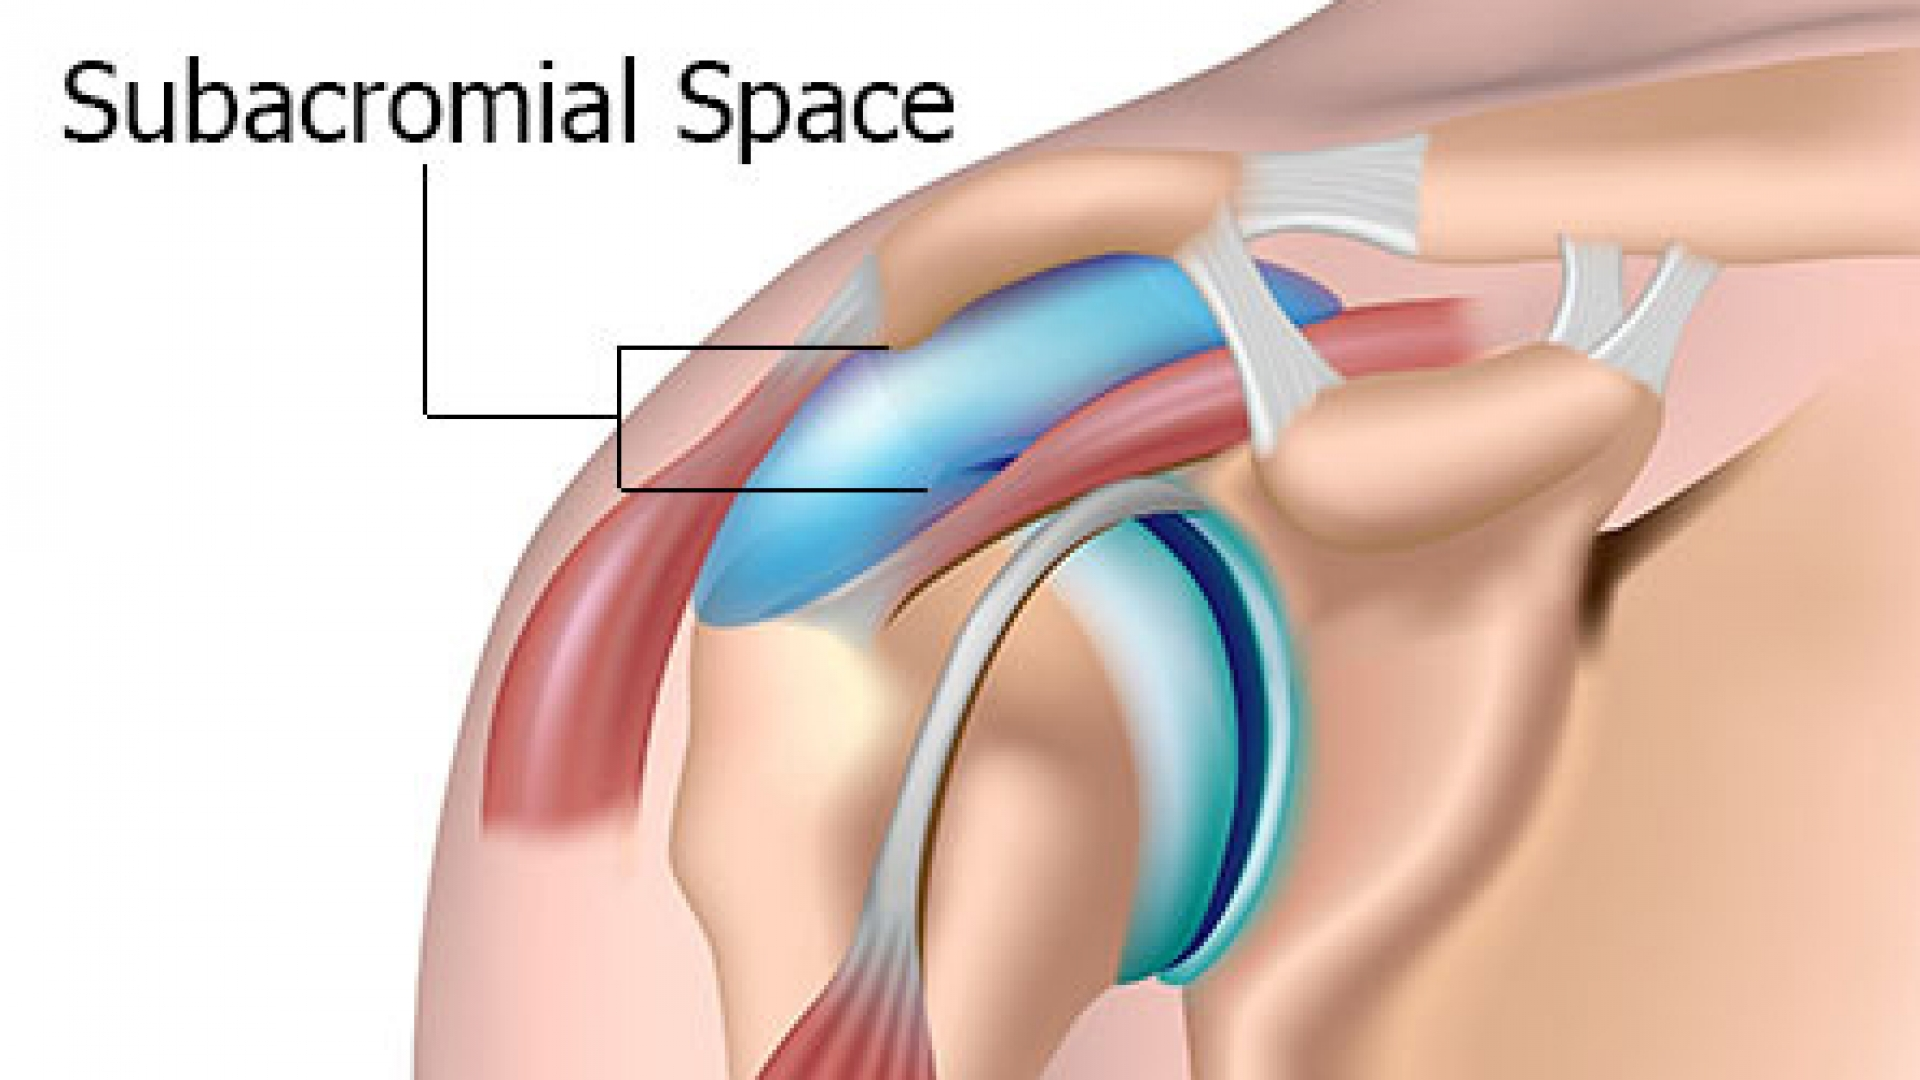 Subacromial Space for Subacromial Impingement